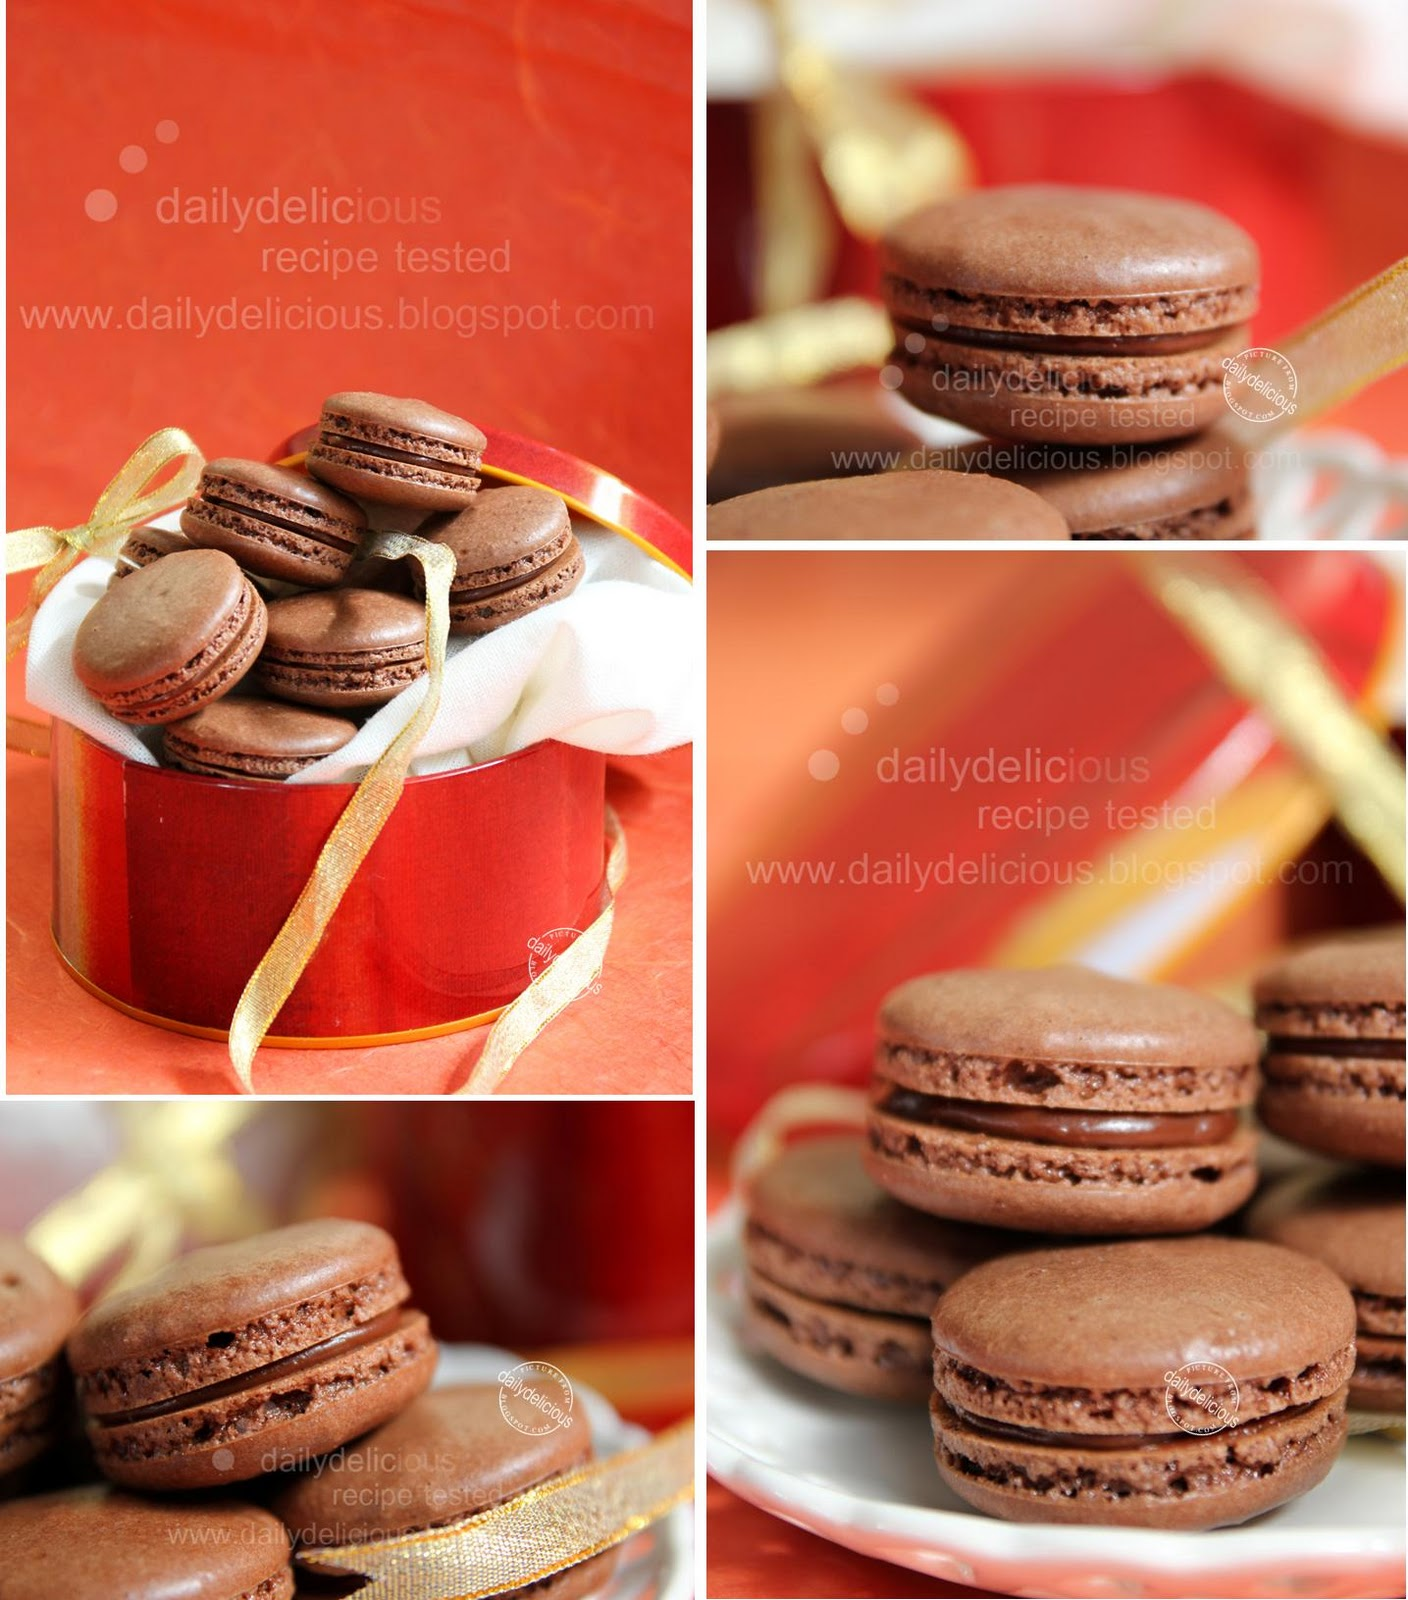 dailydelicious: Chocolate macarons with Mars Ganache: Special gift ...